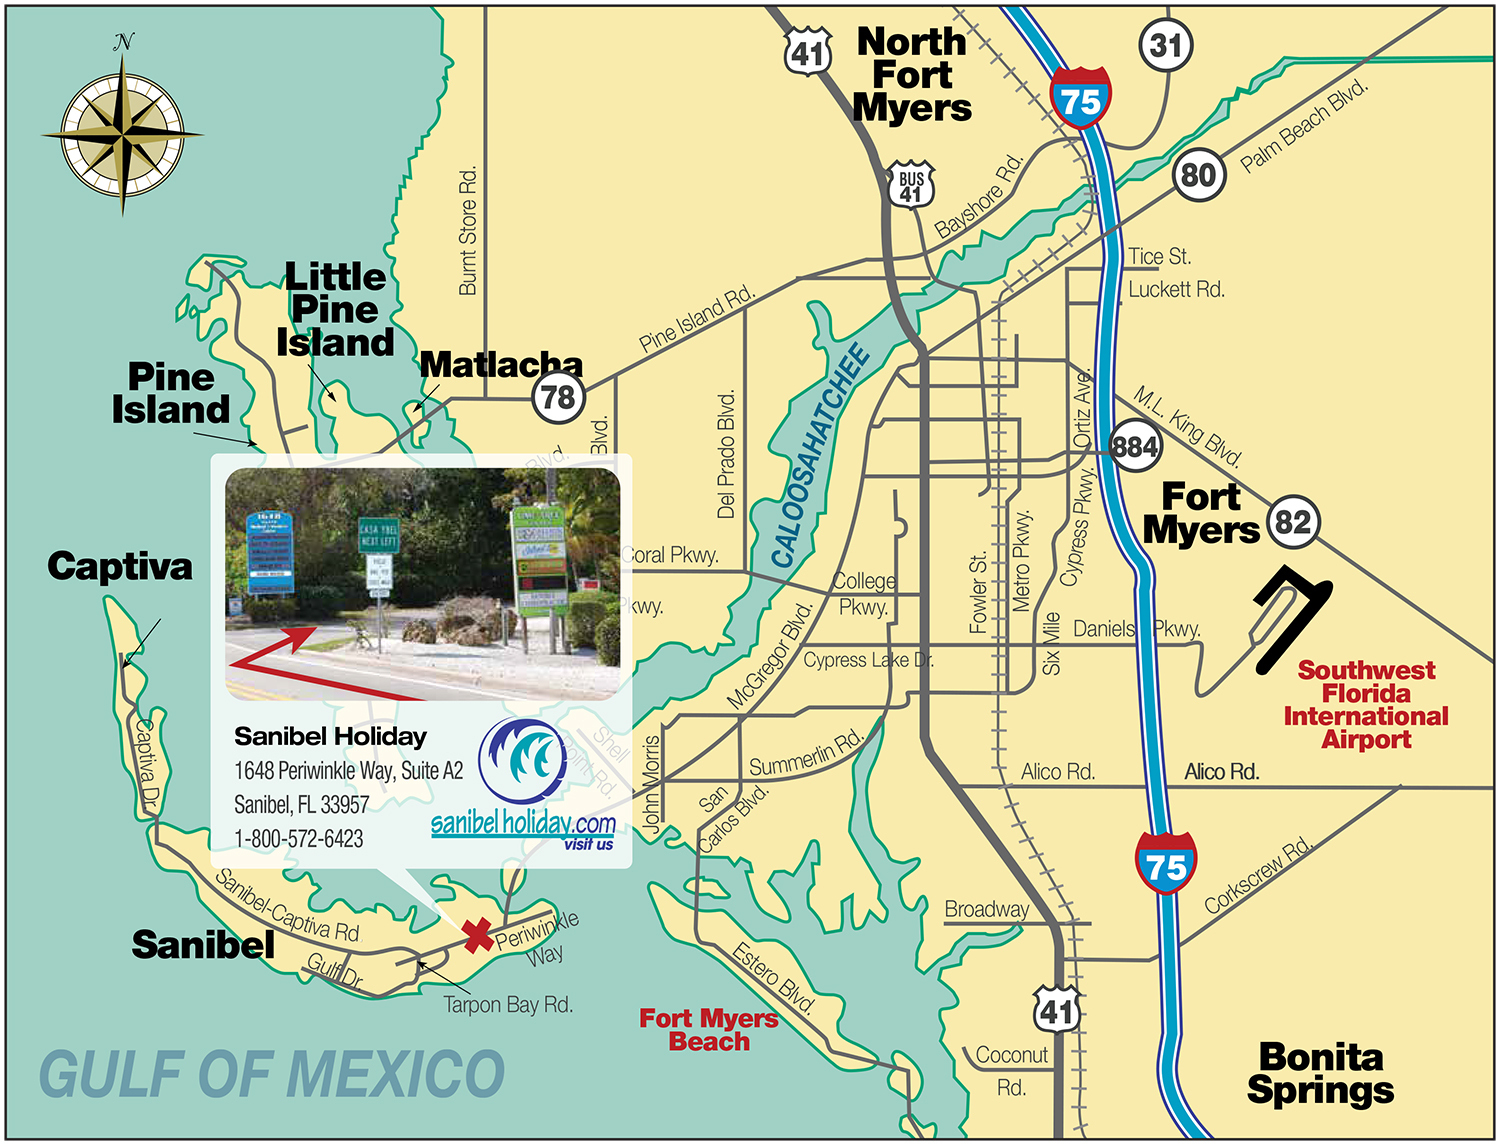 Directions To Sanibel Island | Sanibel Holiday - Street Map Of Sanibel Island Florida